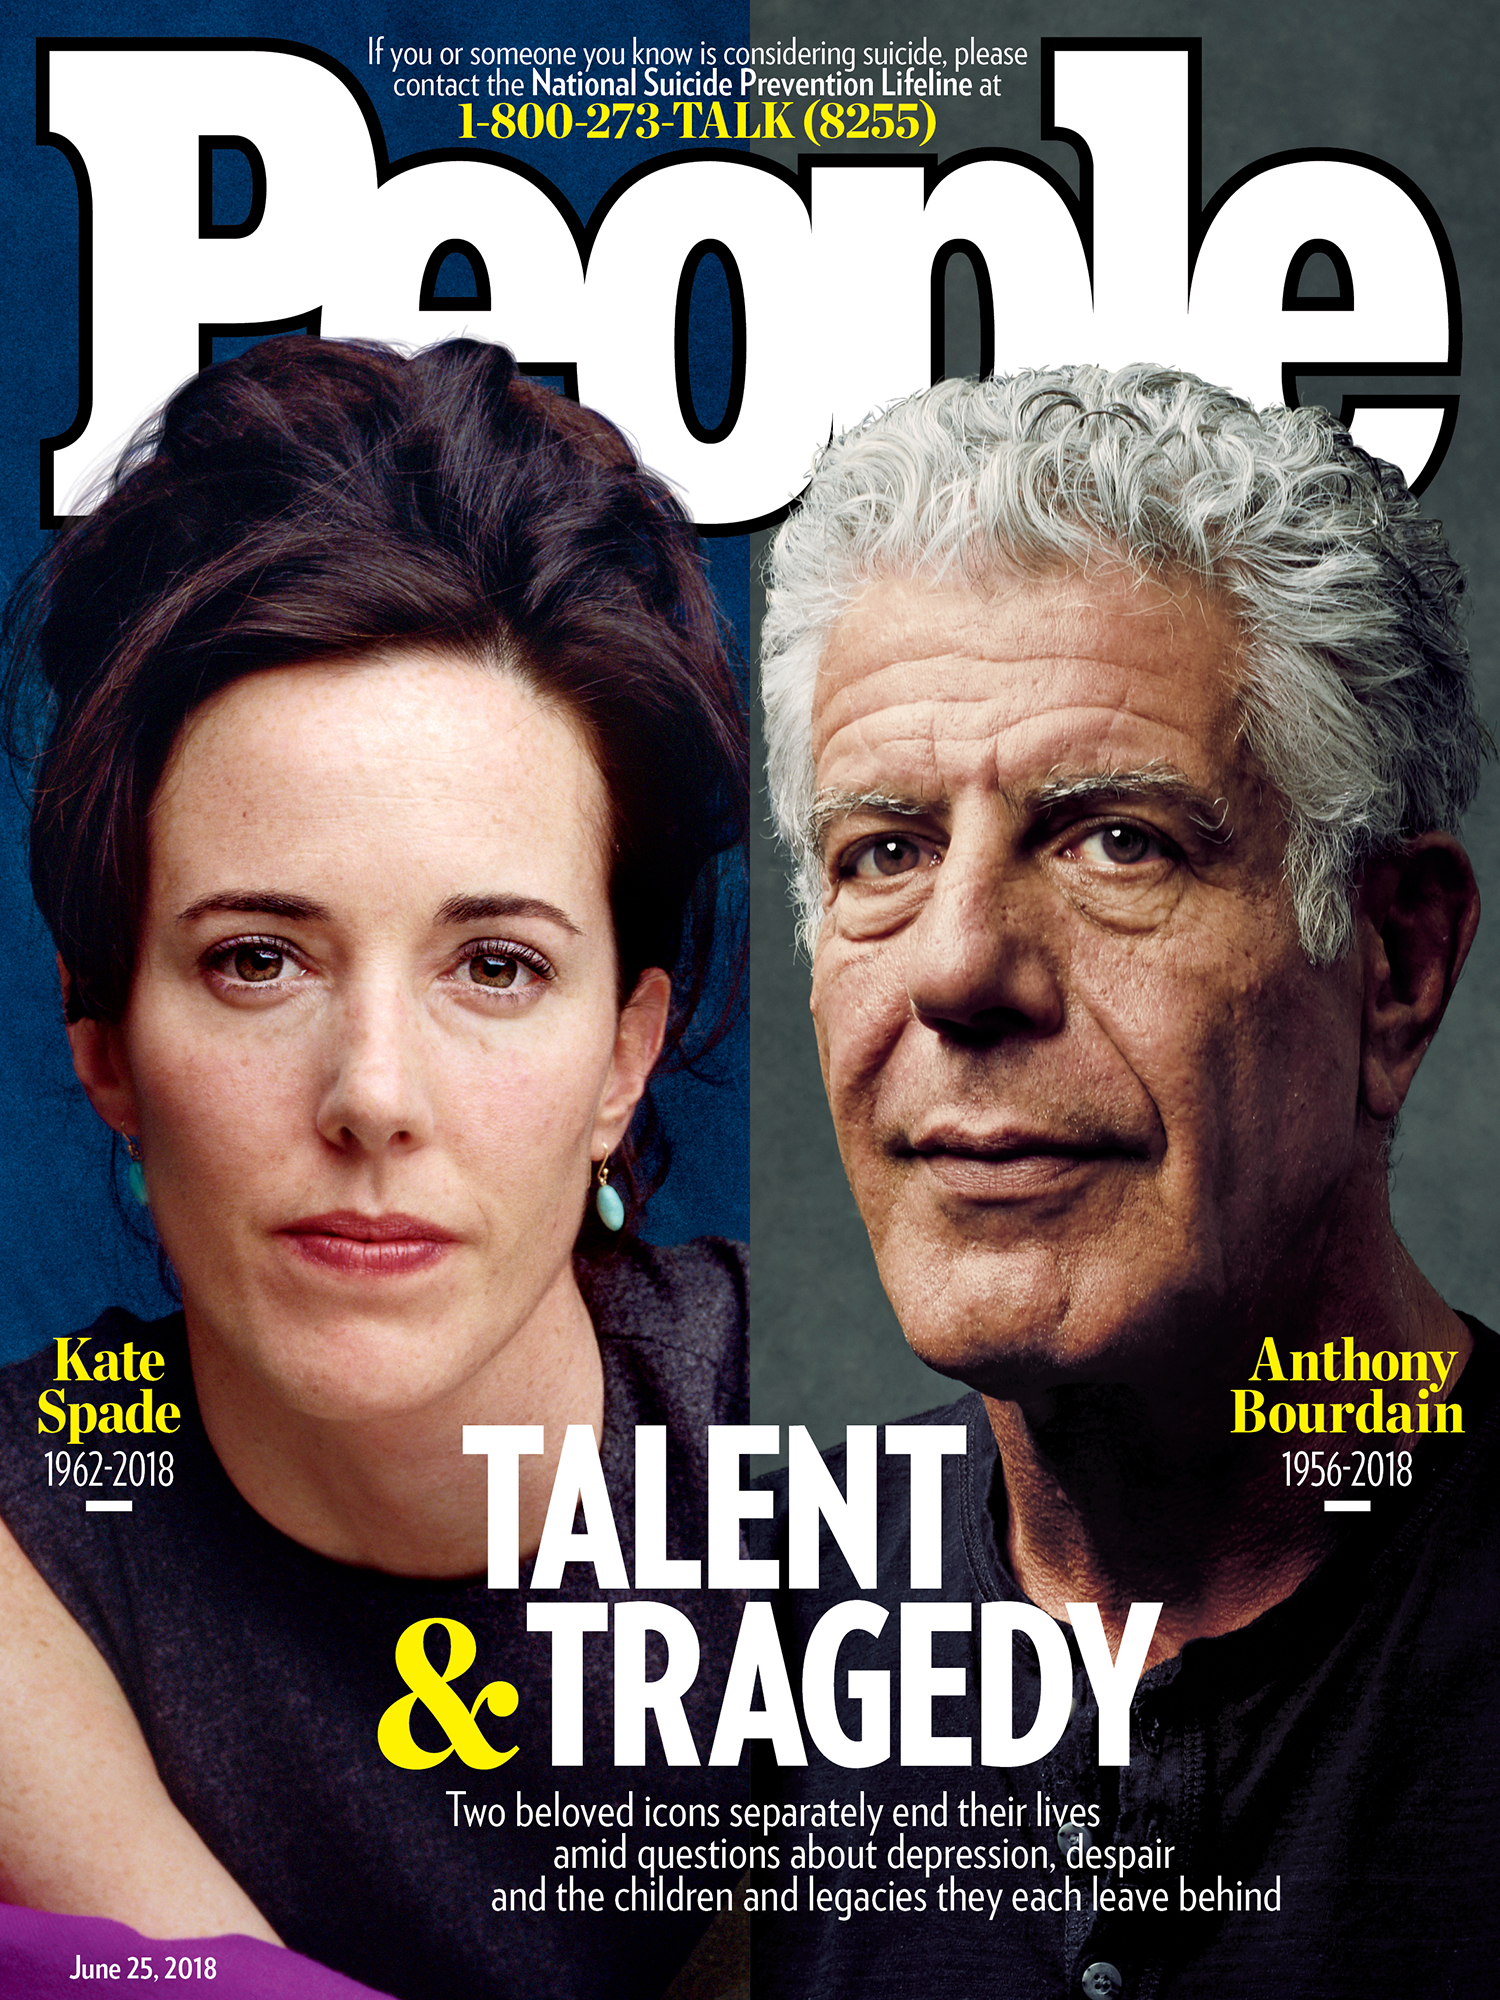 Hey People Magazine! - I hope that you're donating some of the profits that you're making off of Kate Spade and Anthony Bourdain's deaths to a mental health or suicide awareness non-profit, but I highly doubt you are doing anything other than exploiting the deaths of these people and using your huge platform for sensationalism instead of actually helping the cause by promoting activism and better access to healthcare.